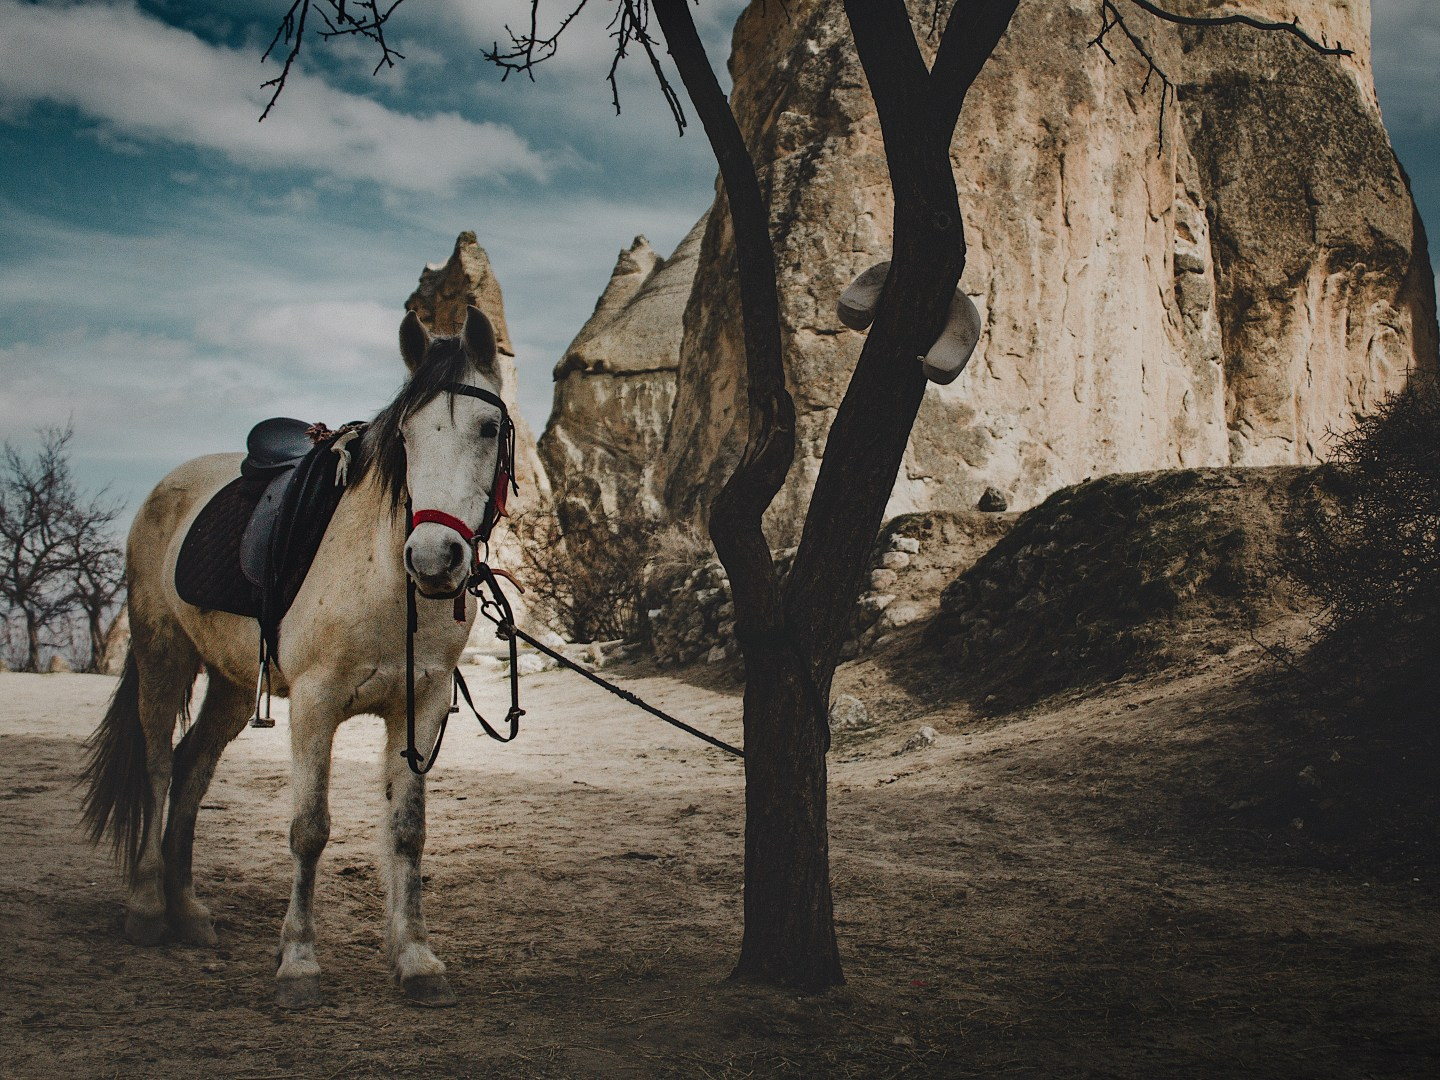 Illustrated by Sade - Horse tied to tree in Cappadocia, Goreme, Turkey